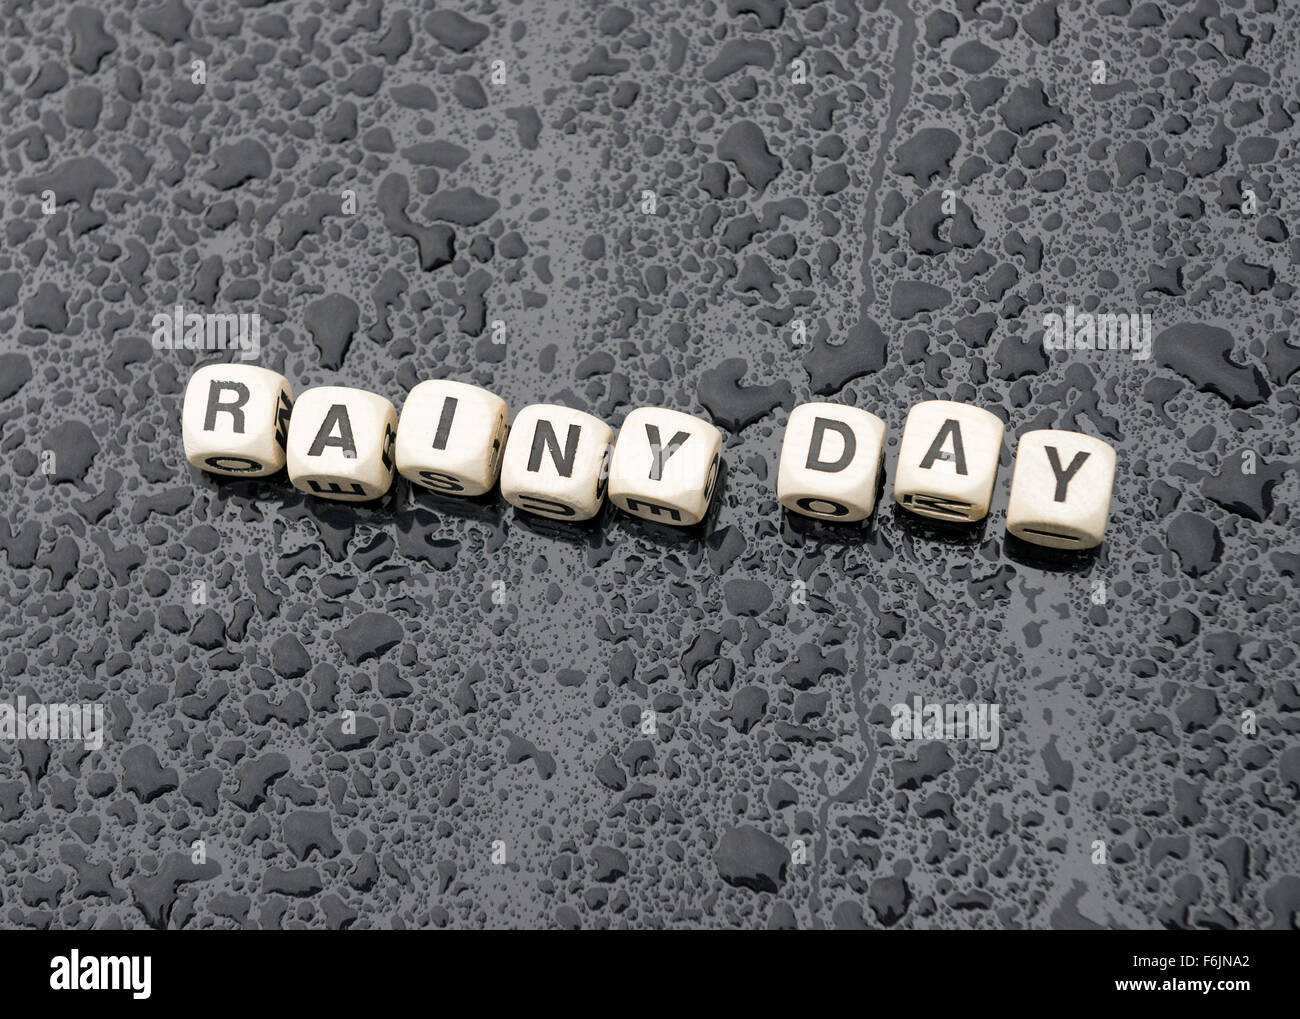 'Rainy Day' spelt out on a rain soaked car bonnet. - Stock Image